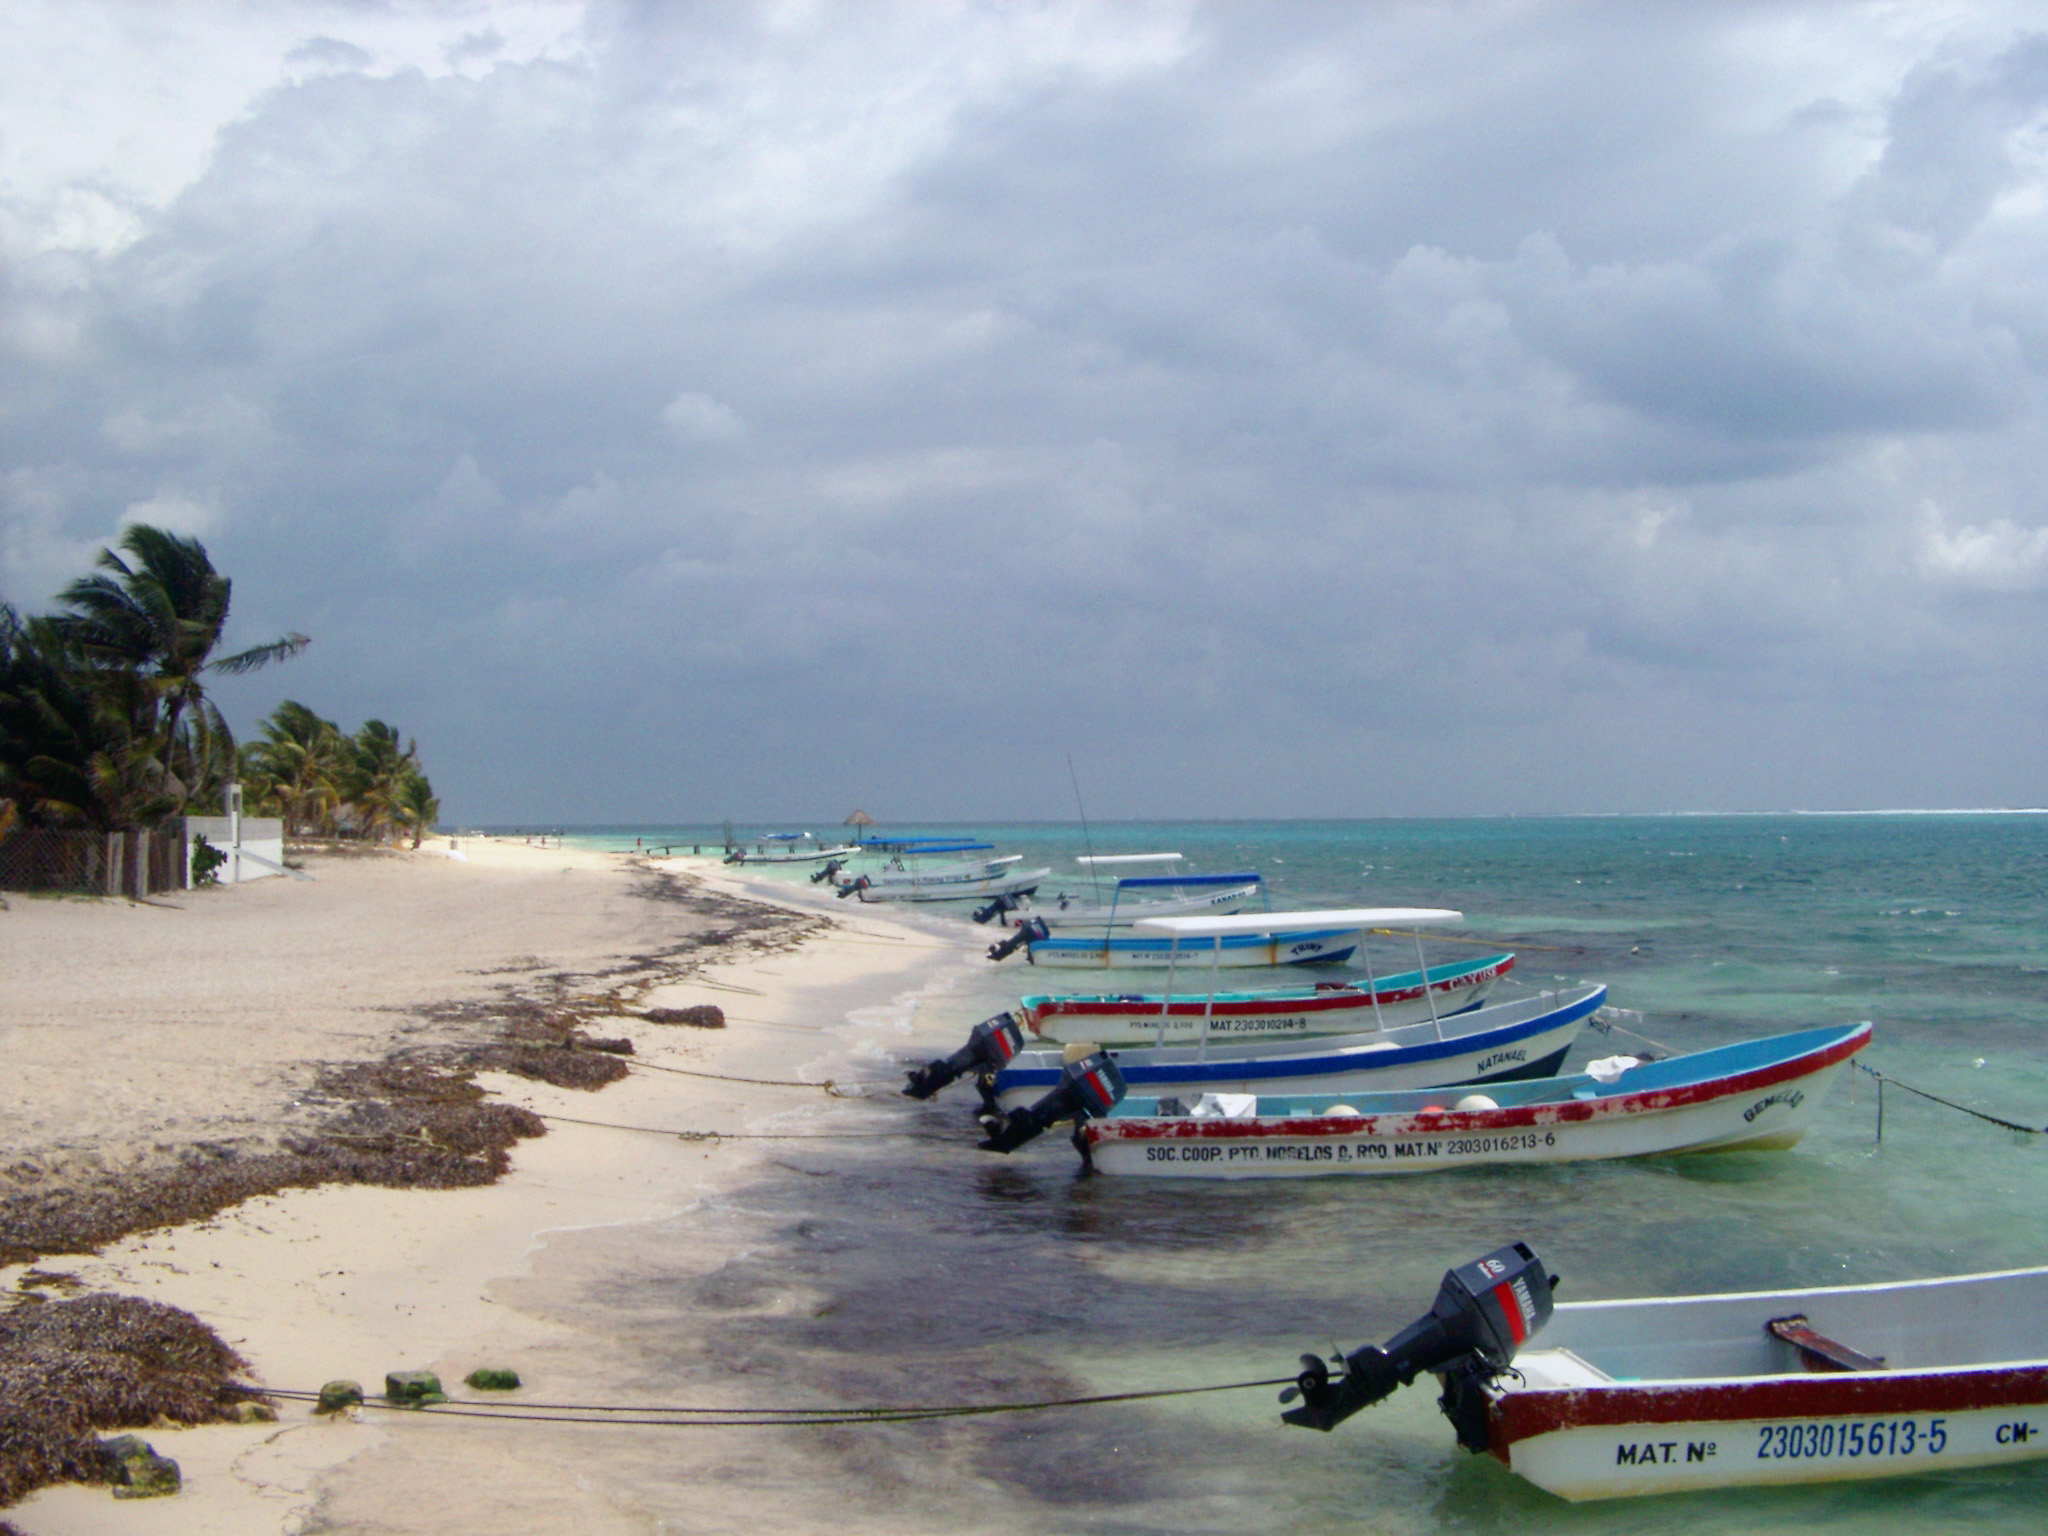 Small motorboats moored to the shoreline in Mexico with their bows pointing out to sea on a golden tropical beach under a cloudy summer sky